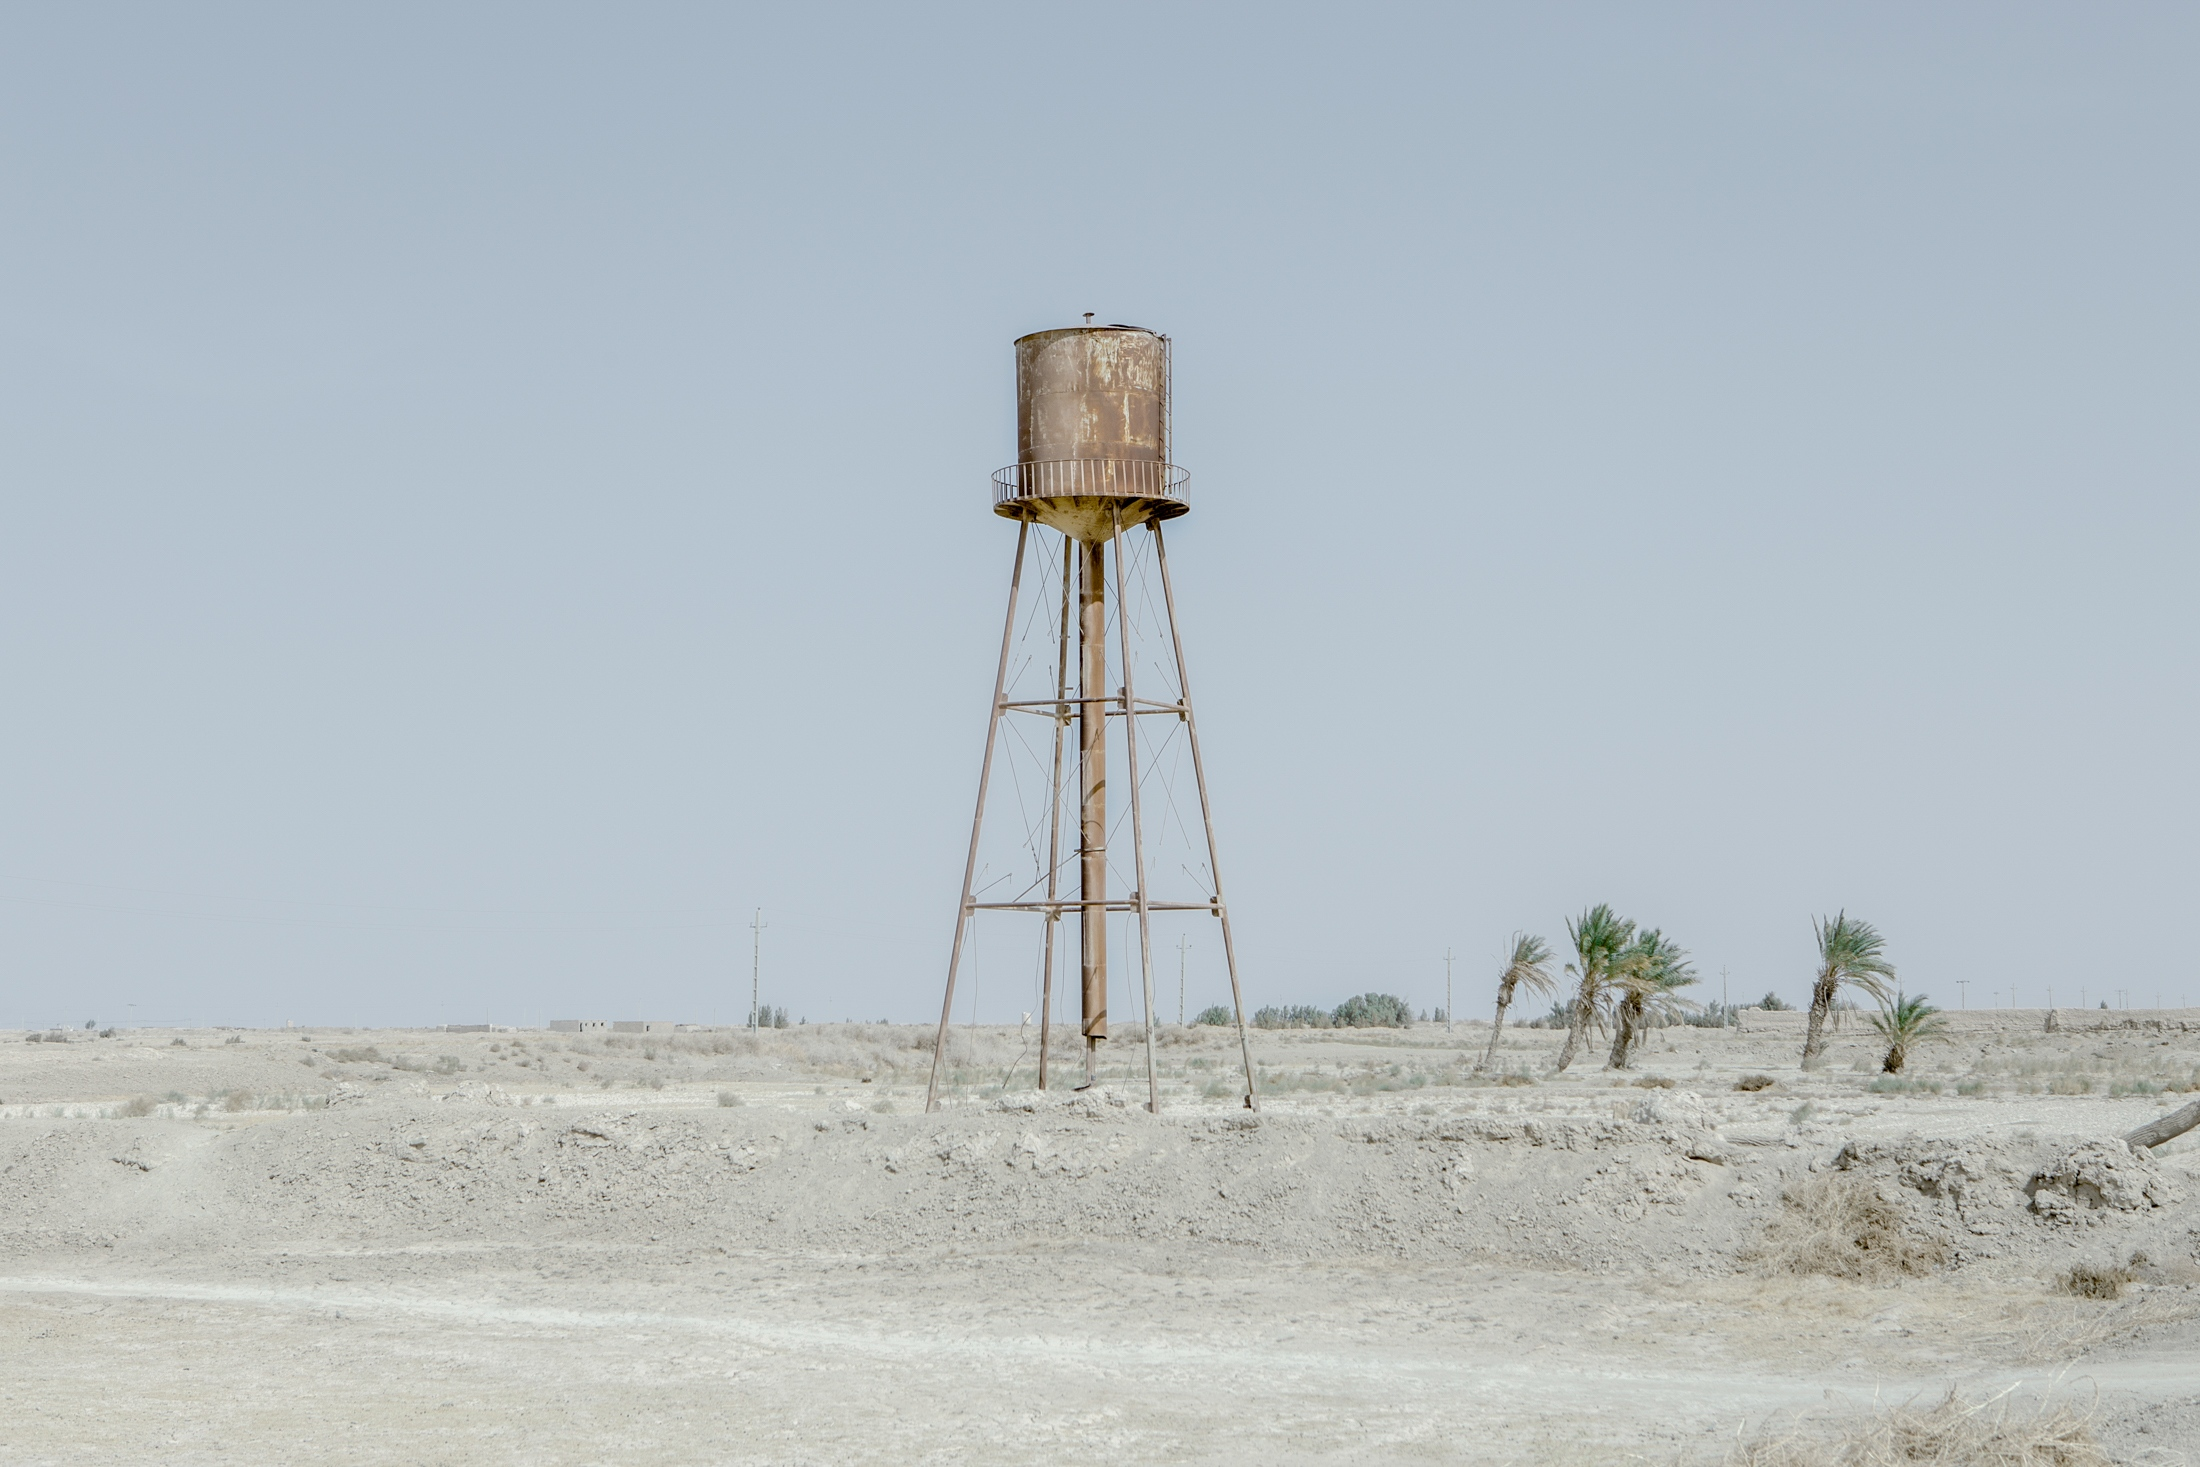 More than 2000 villages are supplied water with tankers and many of them do not have healthy drinking water. The worn, empty and old water tank in the borderline village of Bari-E Mir Ghul. High population, more rural population than urban population, the persistence of droughts,  scarcity of water resources, deficient rainfall and historical backlog in water supply infrastructure are characteristic features of Sistan and Baluchestan province. After the Hirmand River was dried up, the people of the area lost their farming, and the farmland has now become dry, waterless and grassland. Also, with the drying up of the Hamun fishery in the area, which was one of the indigenous occupations in the area, the boats left in this dry wetland show an unfortunate and critical situation in the area. Sistan and Baluchestan province. Iran.2018